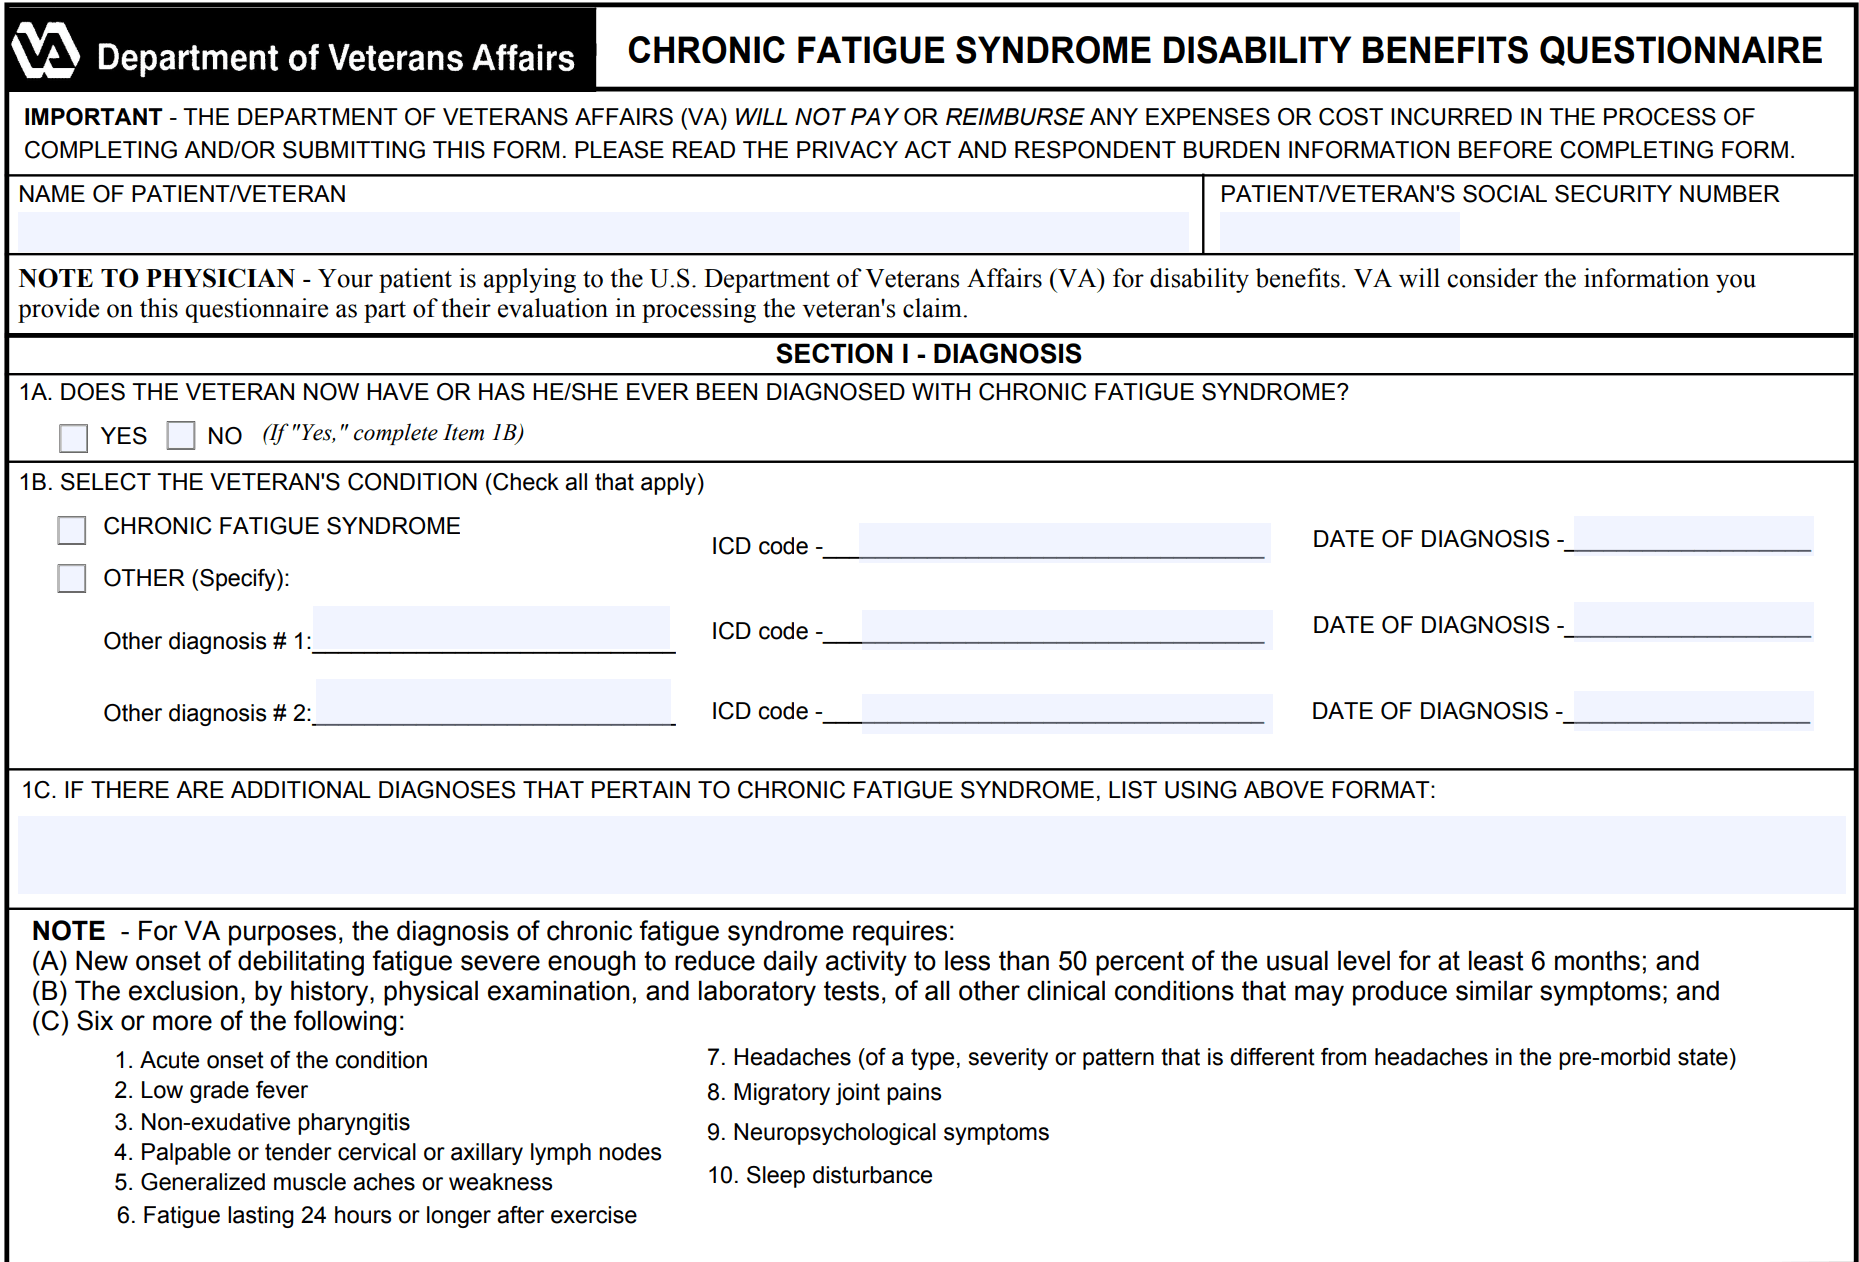 DBQ for Chronic Fatigue Syndrome